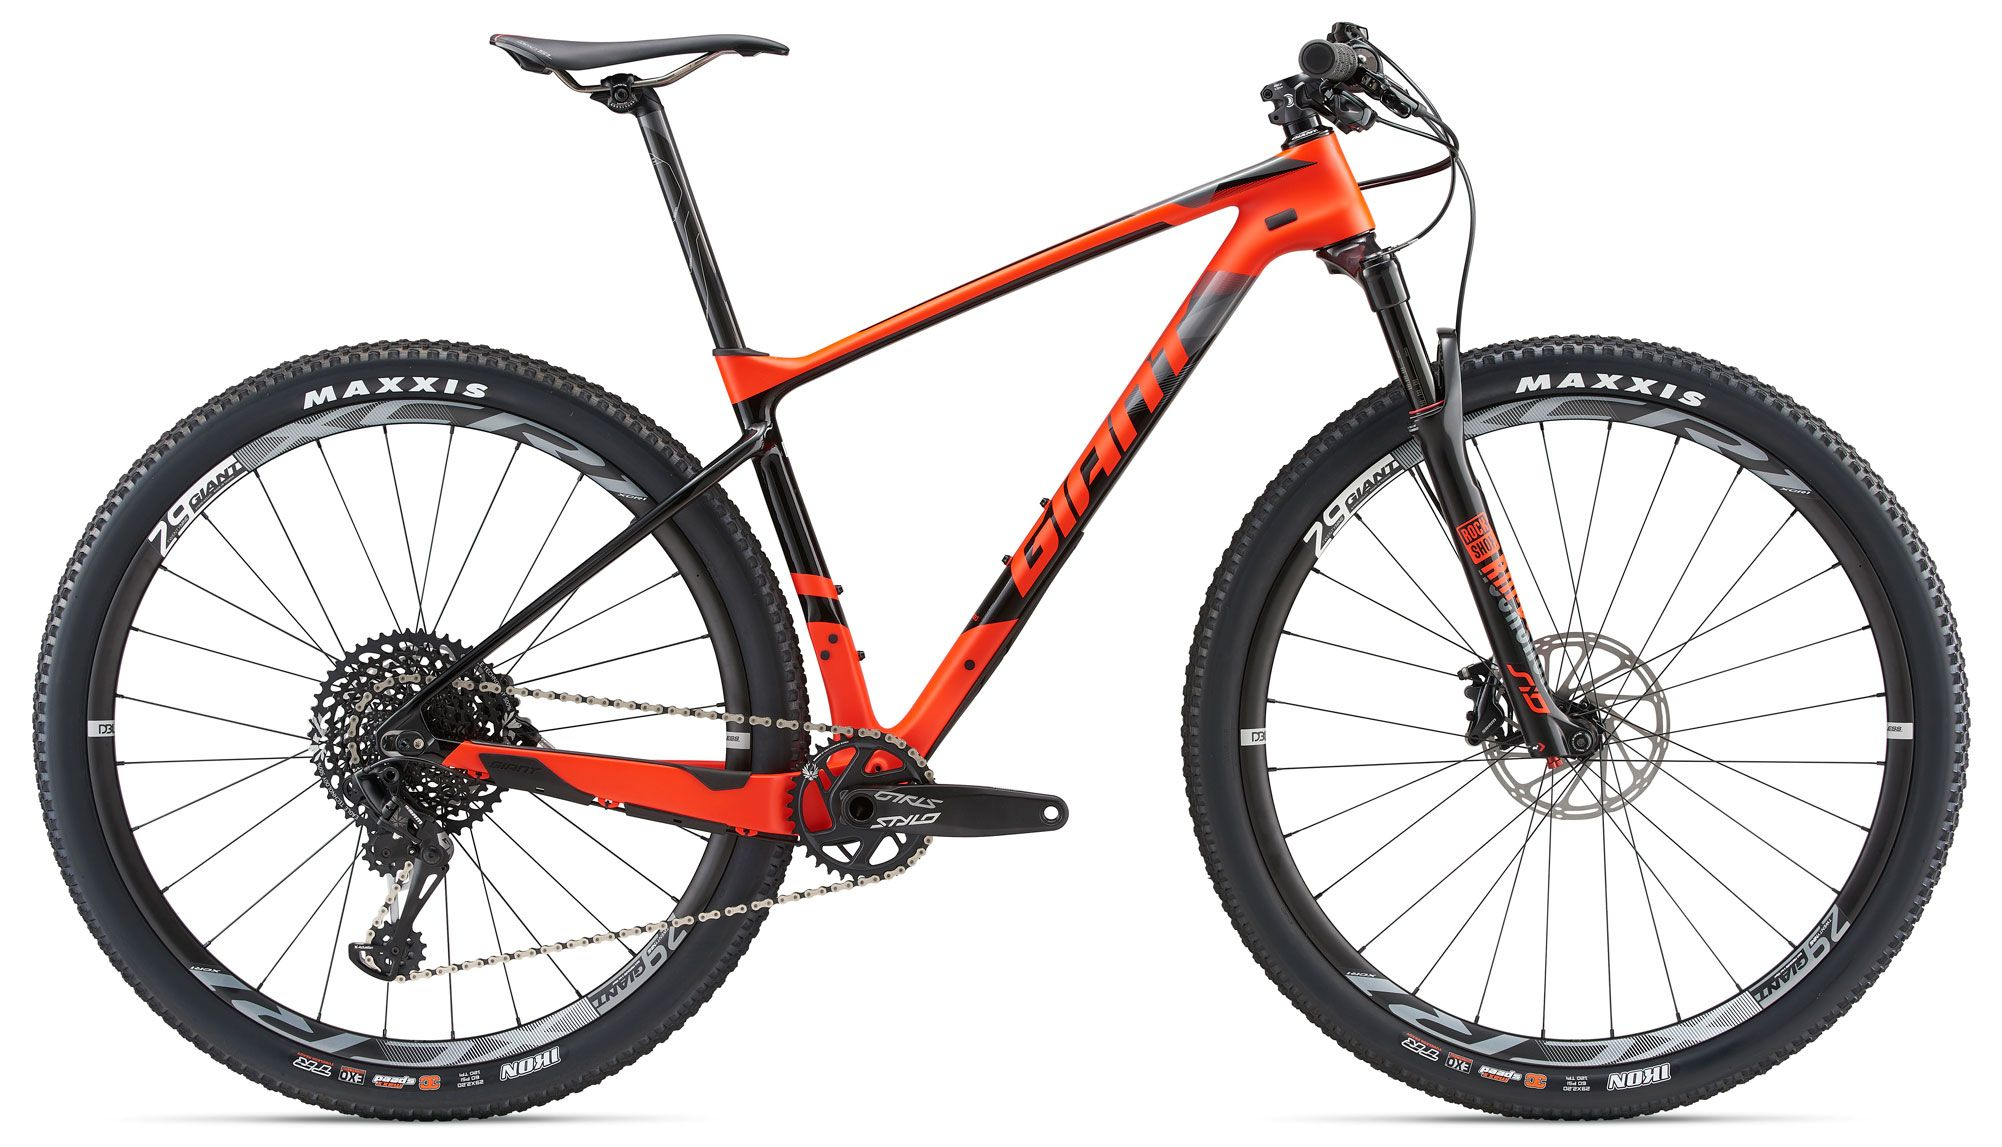 Велосипед Giant XTC Advanced 29er 1 2018 цена